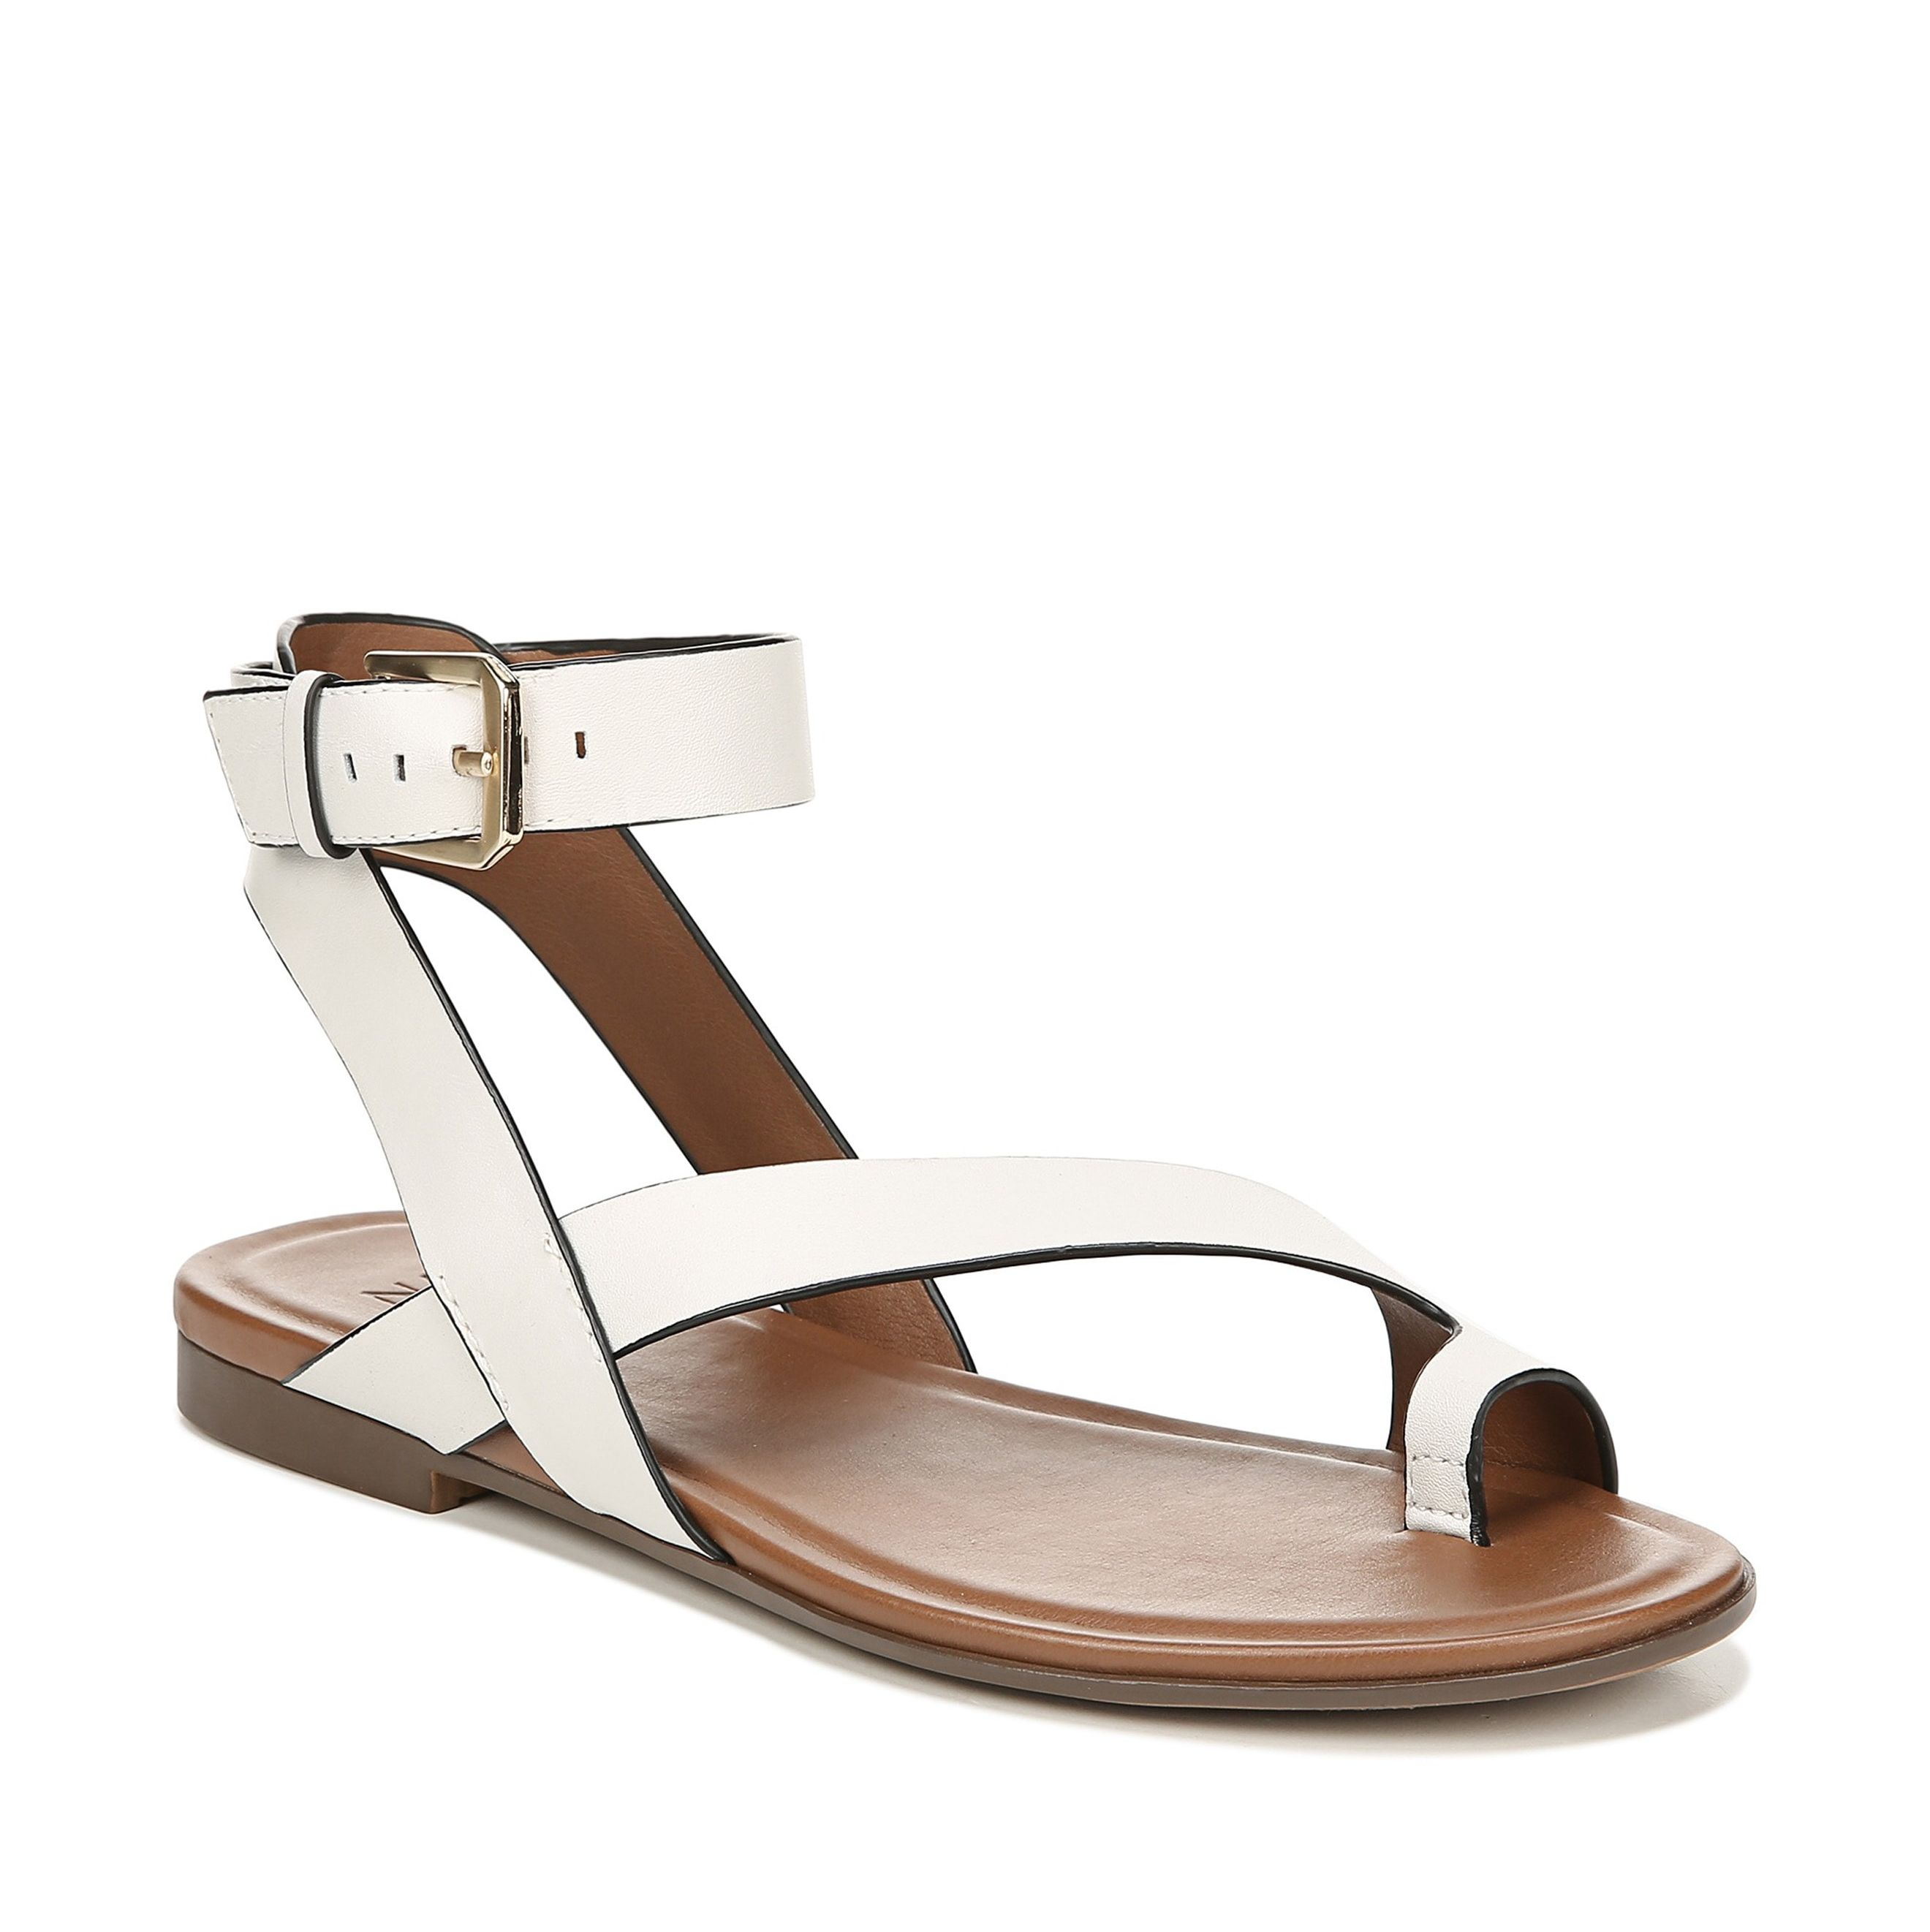 fbac9304300e 15 Comfortable Walking Sandals For Women That Are Also Super Cute